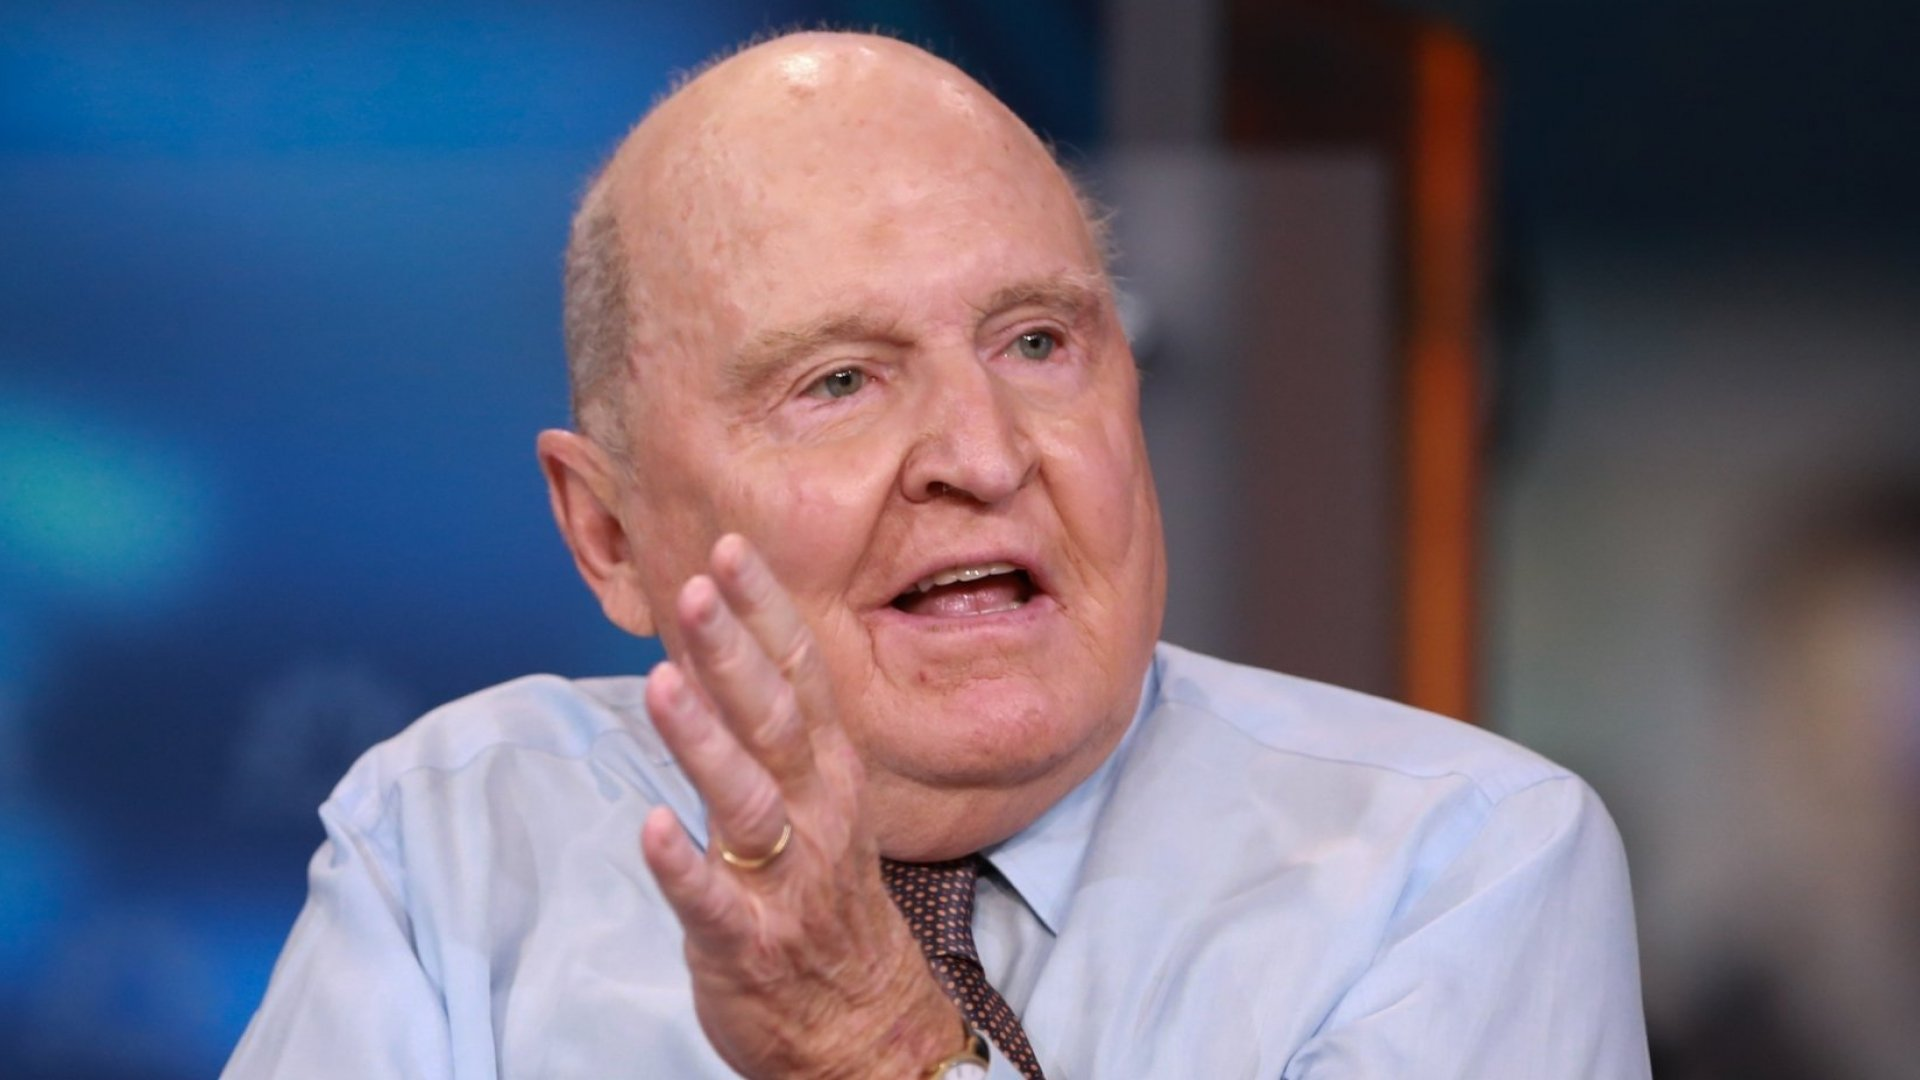 Jack Welch, former Chairman & CEO of General Electric